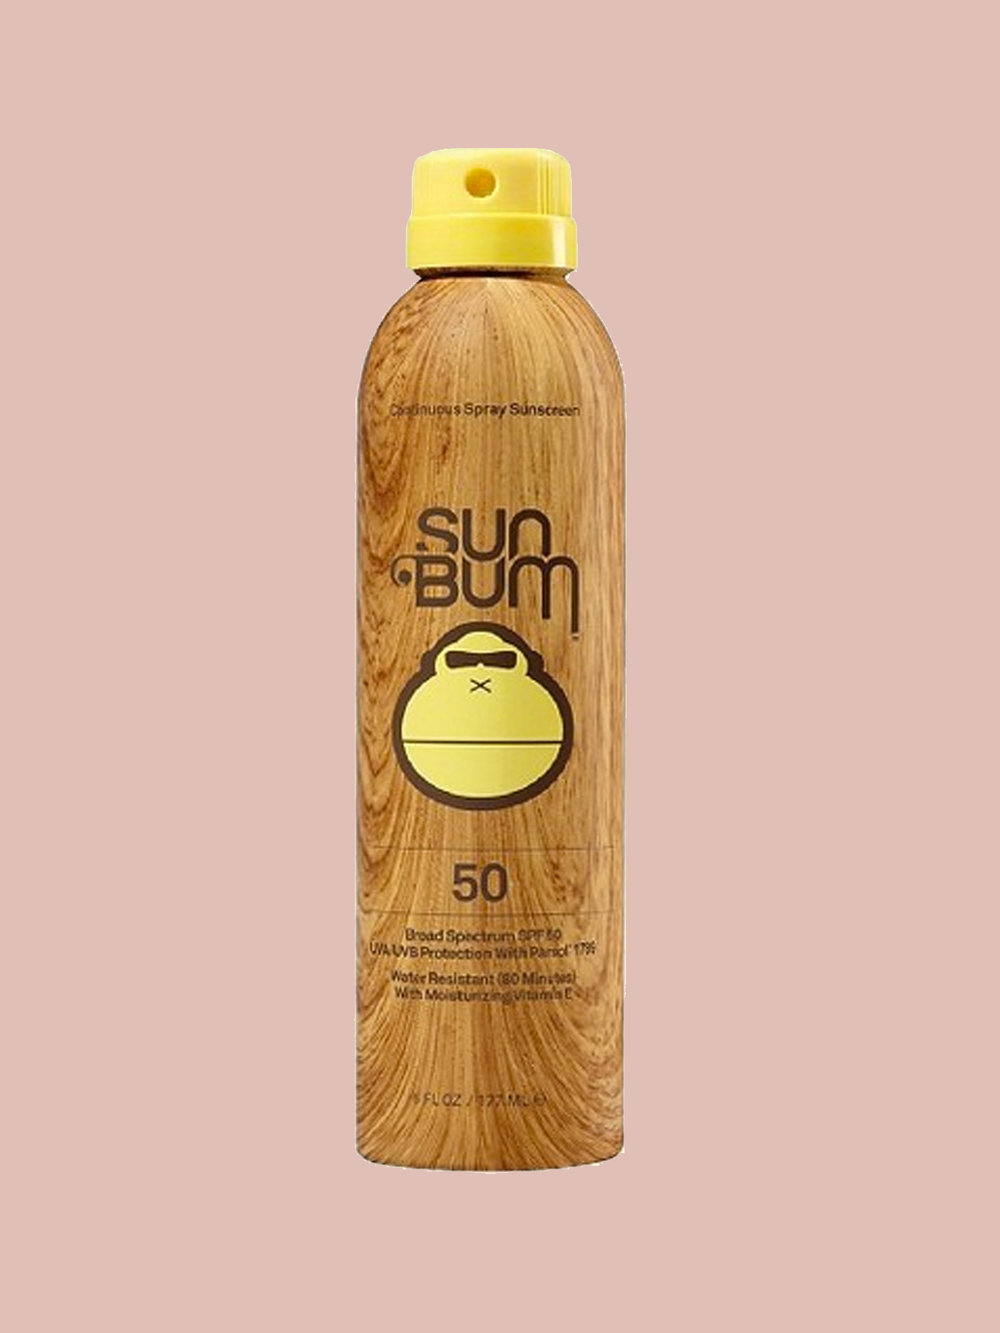 SUNSCREEN: Sun Bum SPF 50 Spray